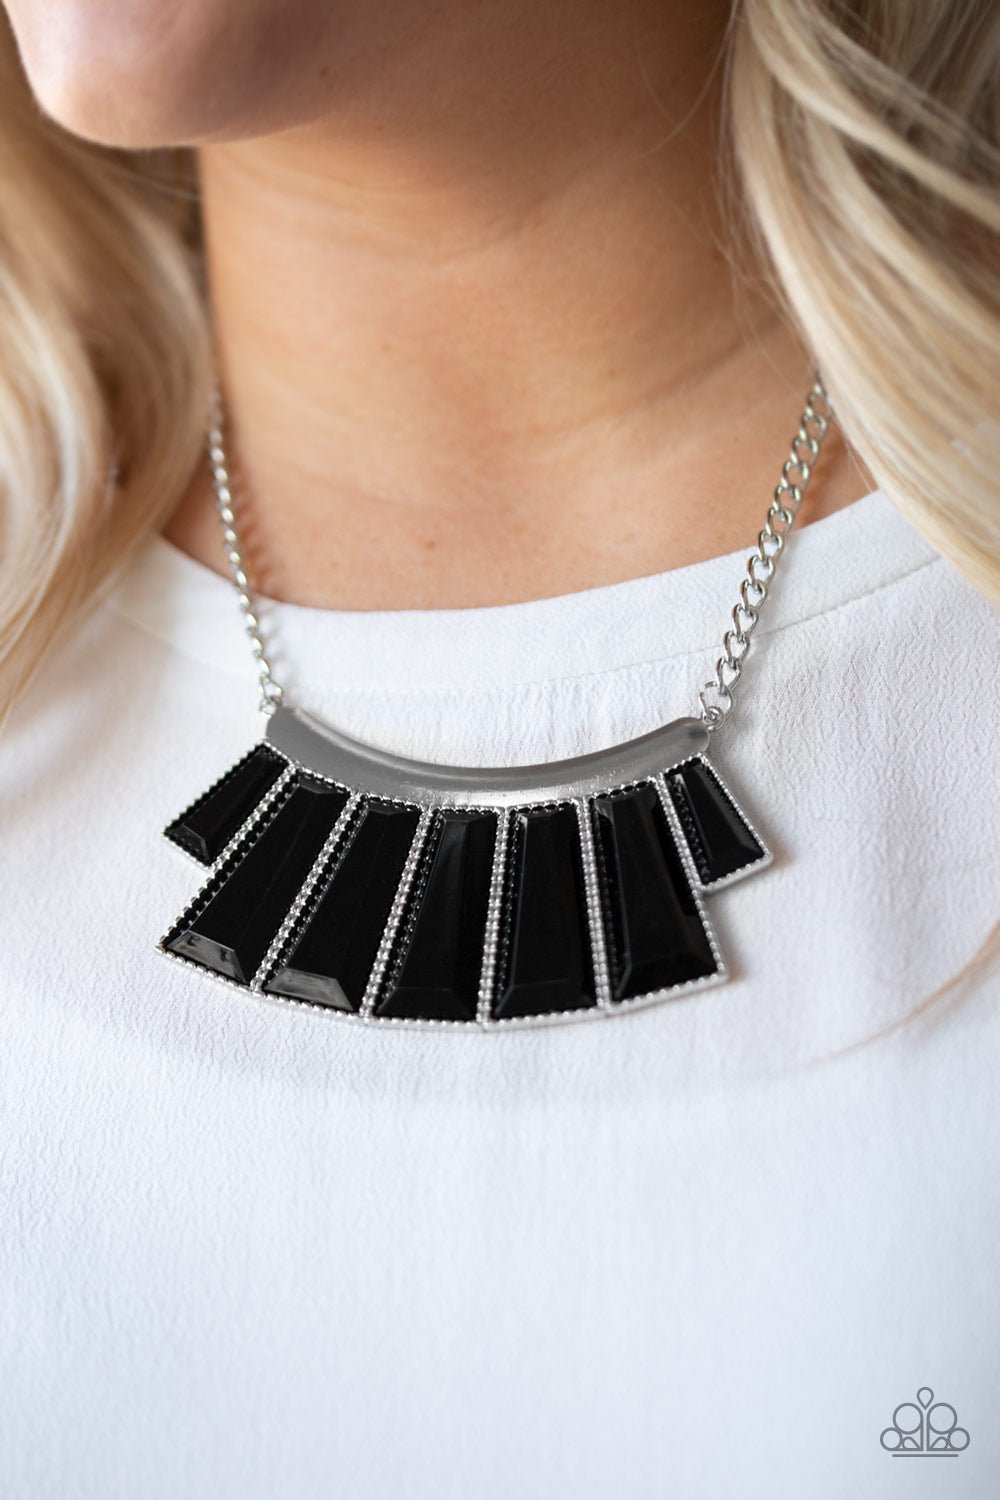 Glamour Goddess - Black Emerald Plates LOP Paparazzi Jewelry Necklace paparazzi accessories jewelry Necklaces